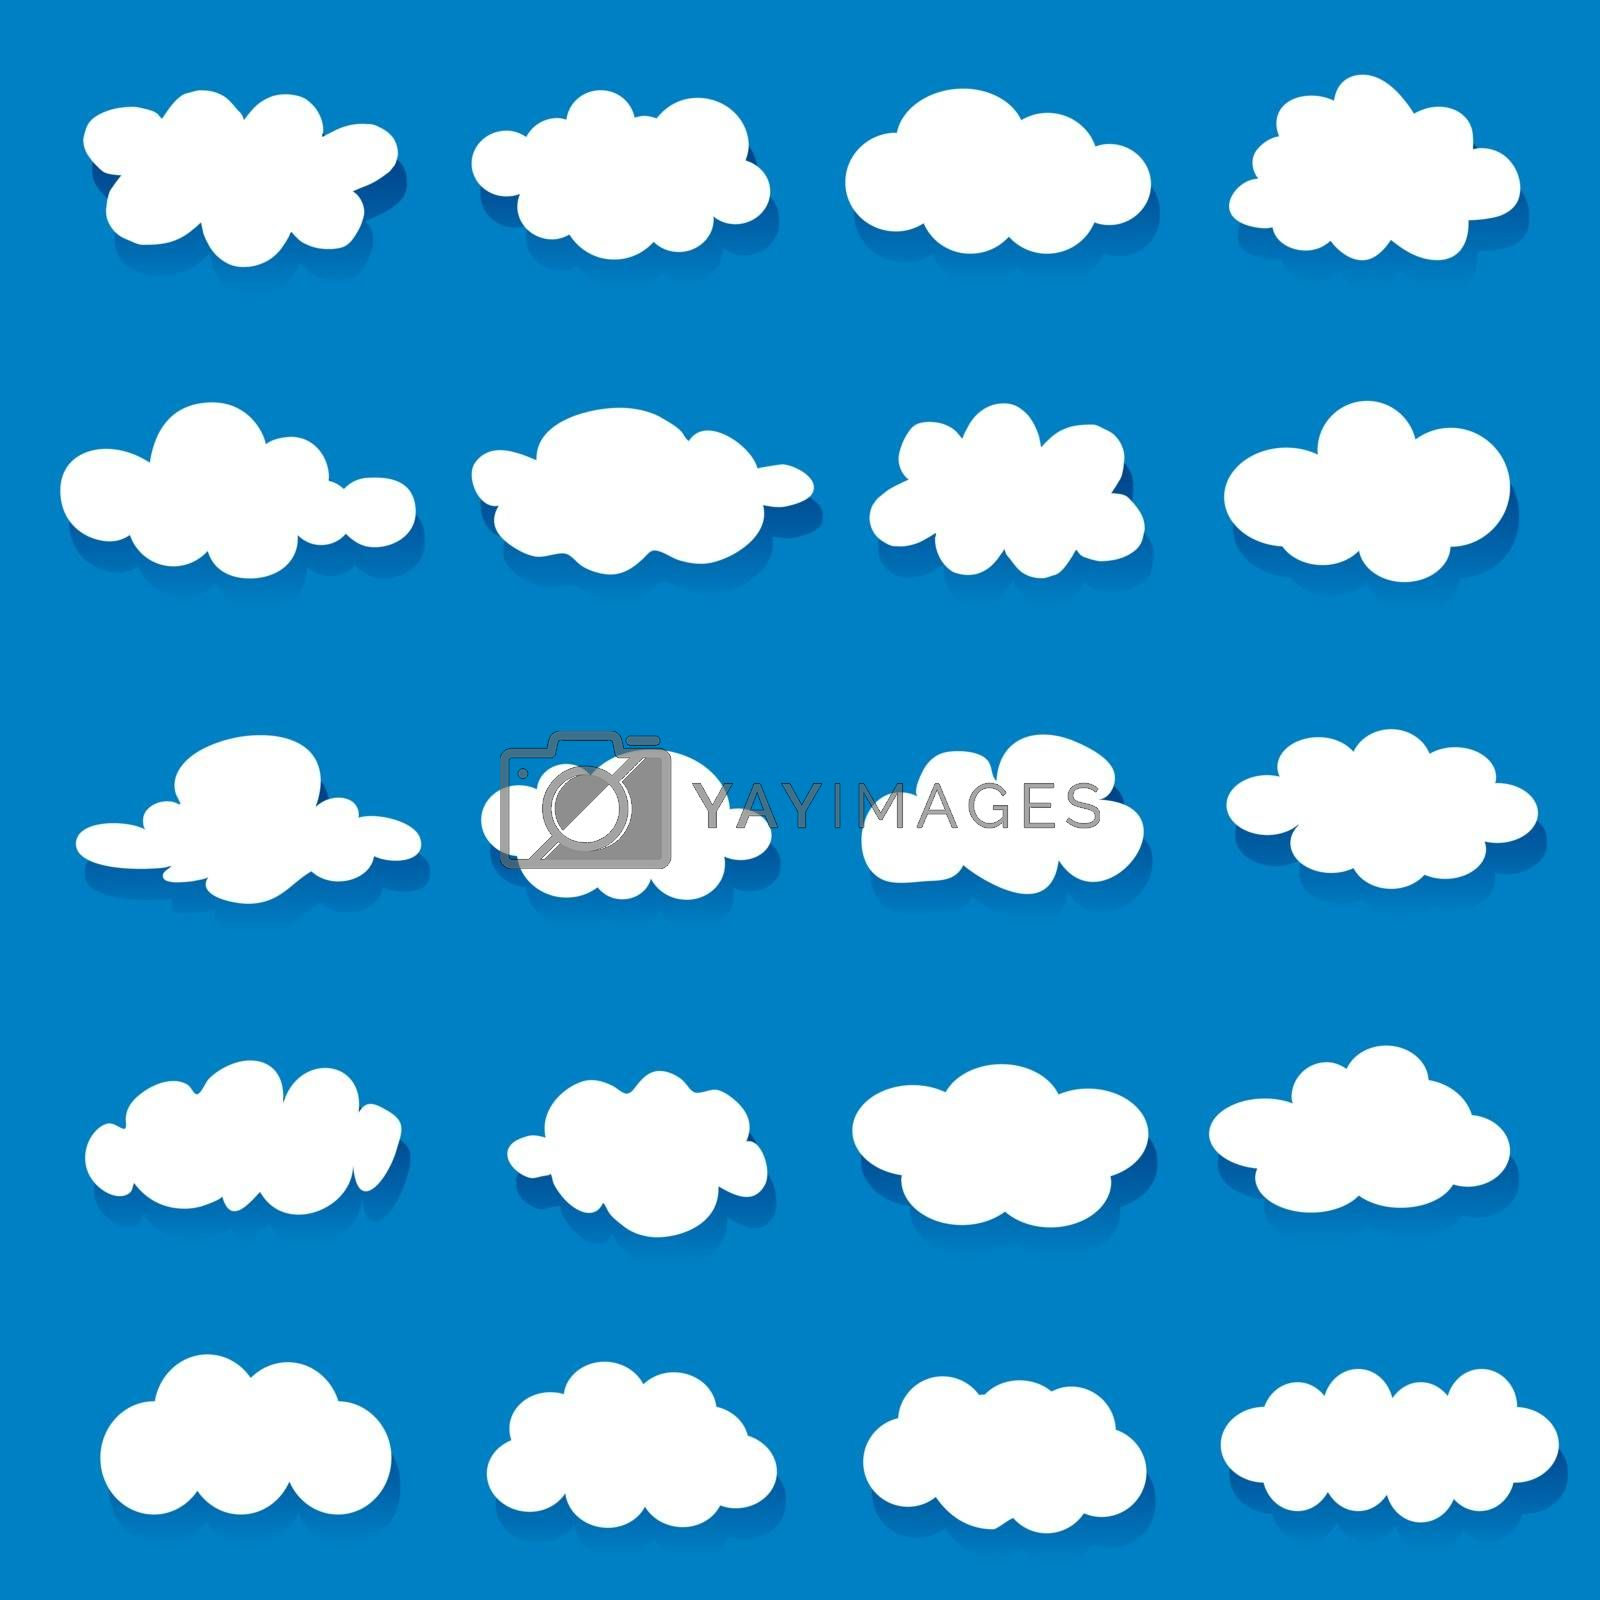 Royalty free image of Set of Cloud Shape element icon and symbol Vector by Ienjoyeverytime